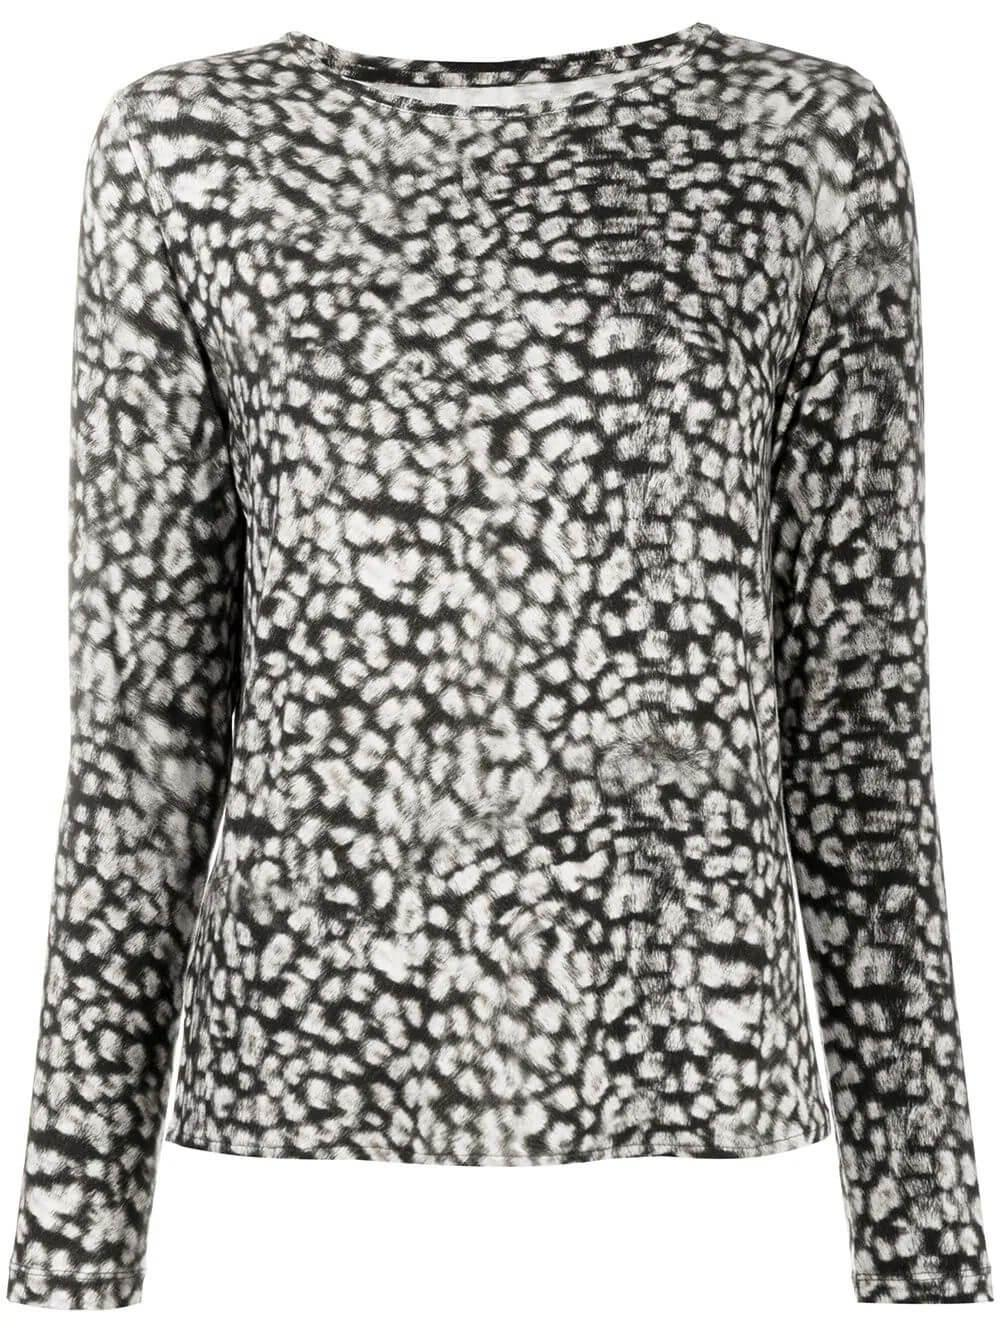 Soft Touch Animal Print Top